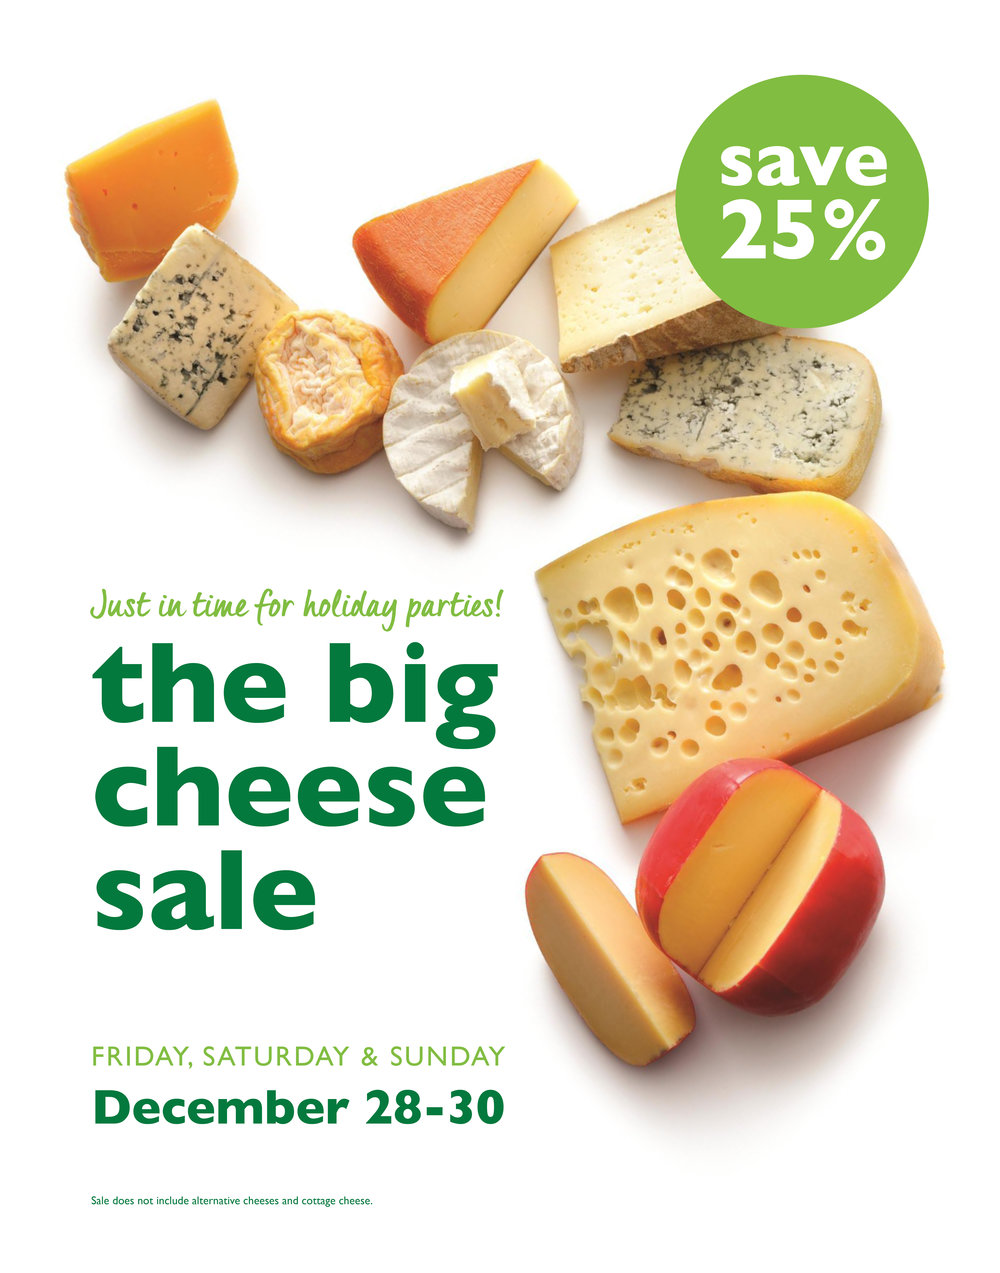 CheeseSale_22x28.jpg